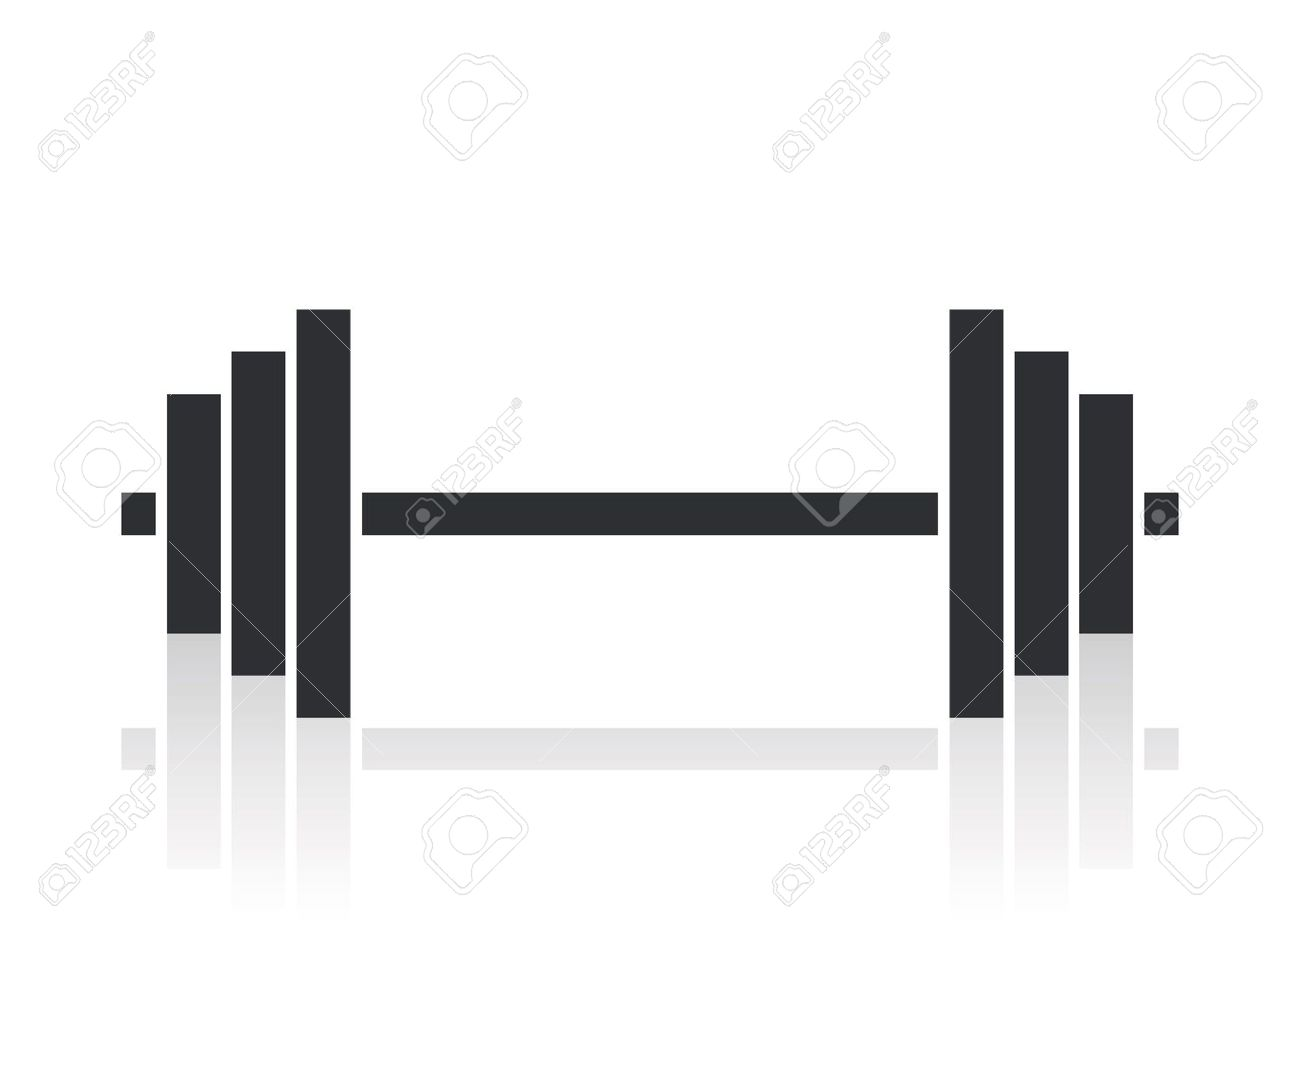 Free Weights Your Design Lyrics: Clipart Panda - Free Clipart Images